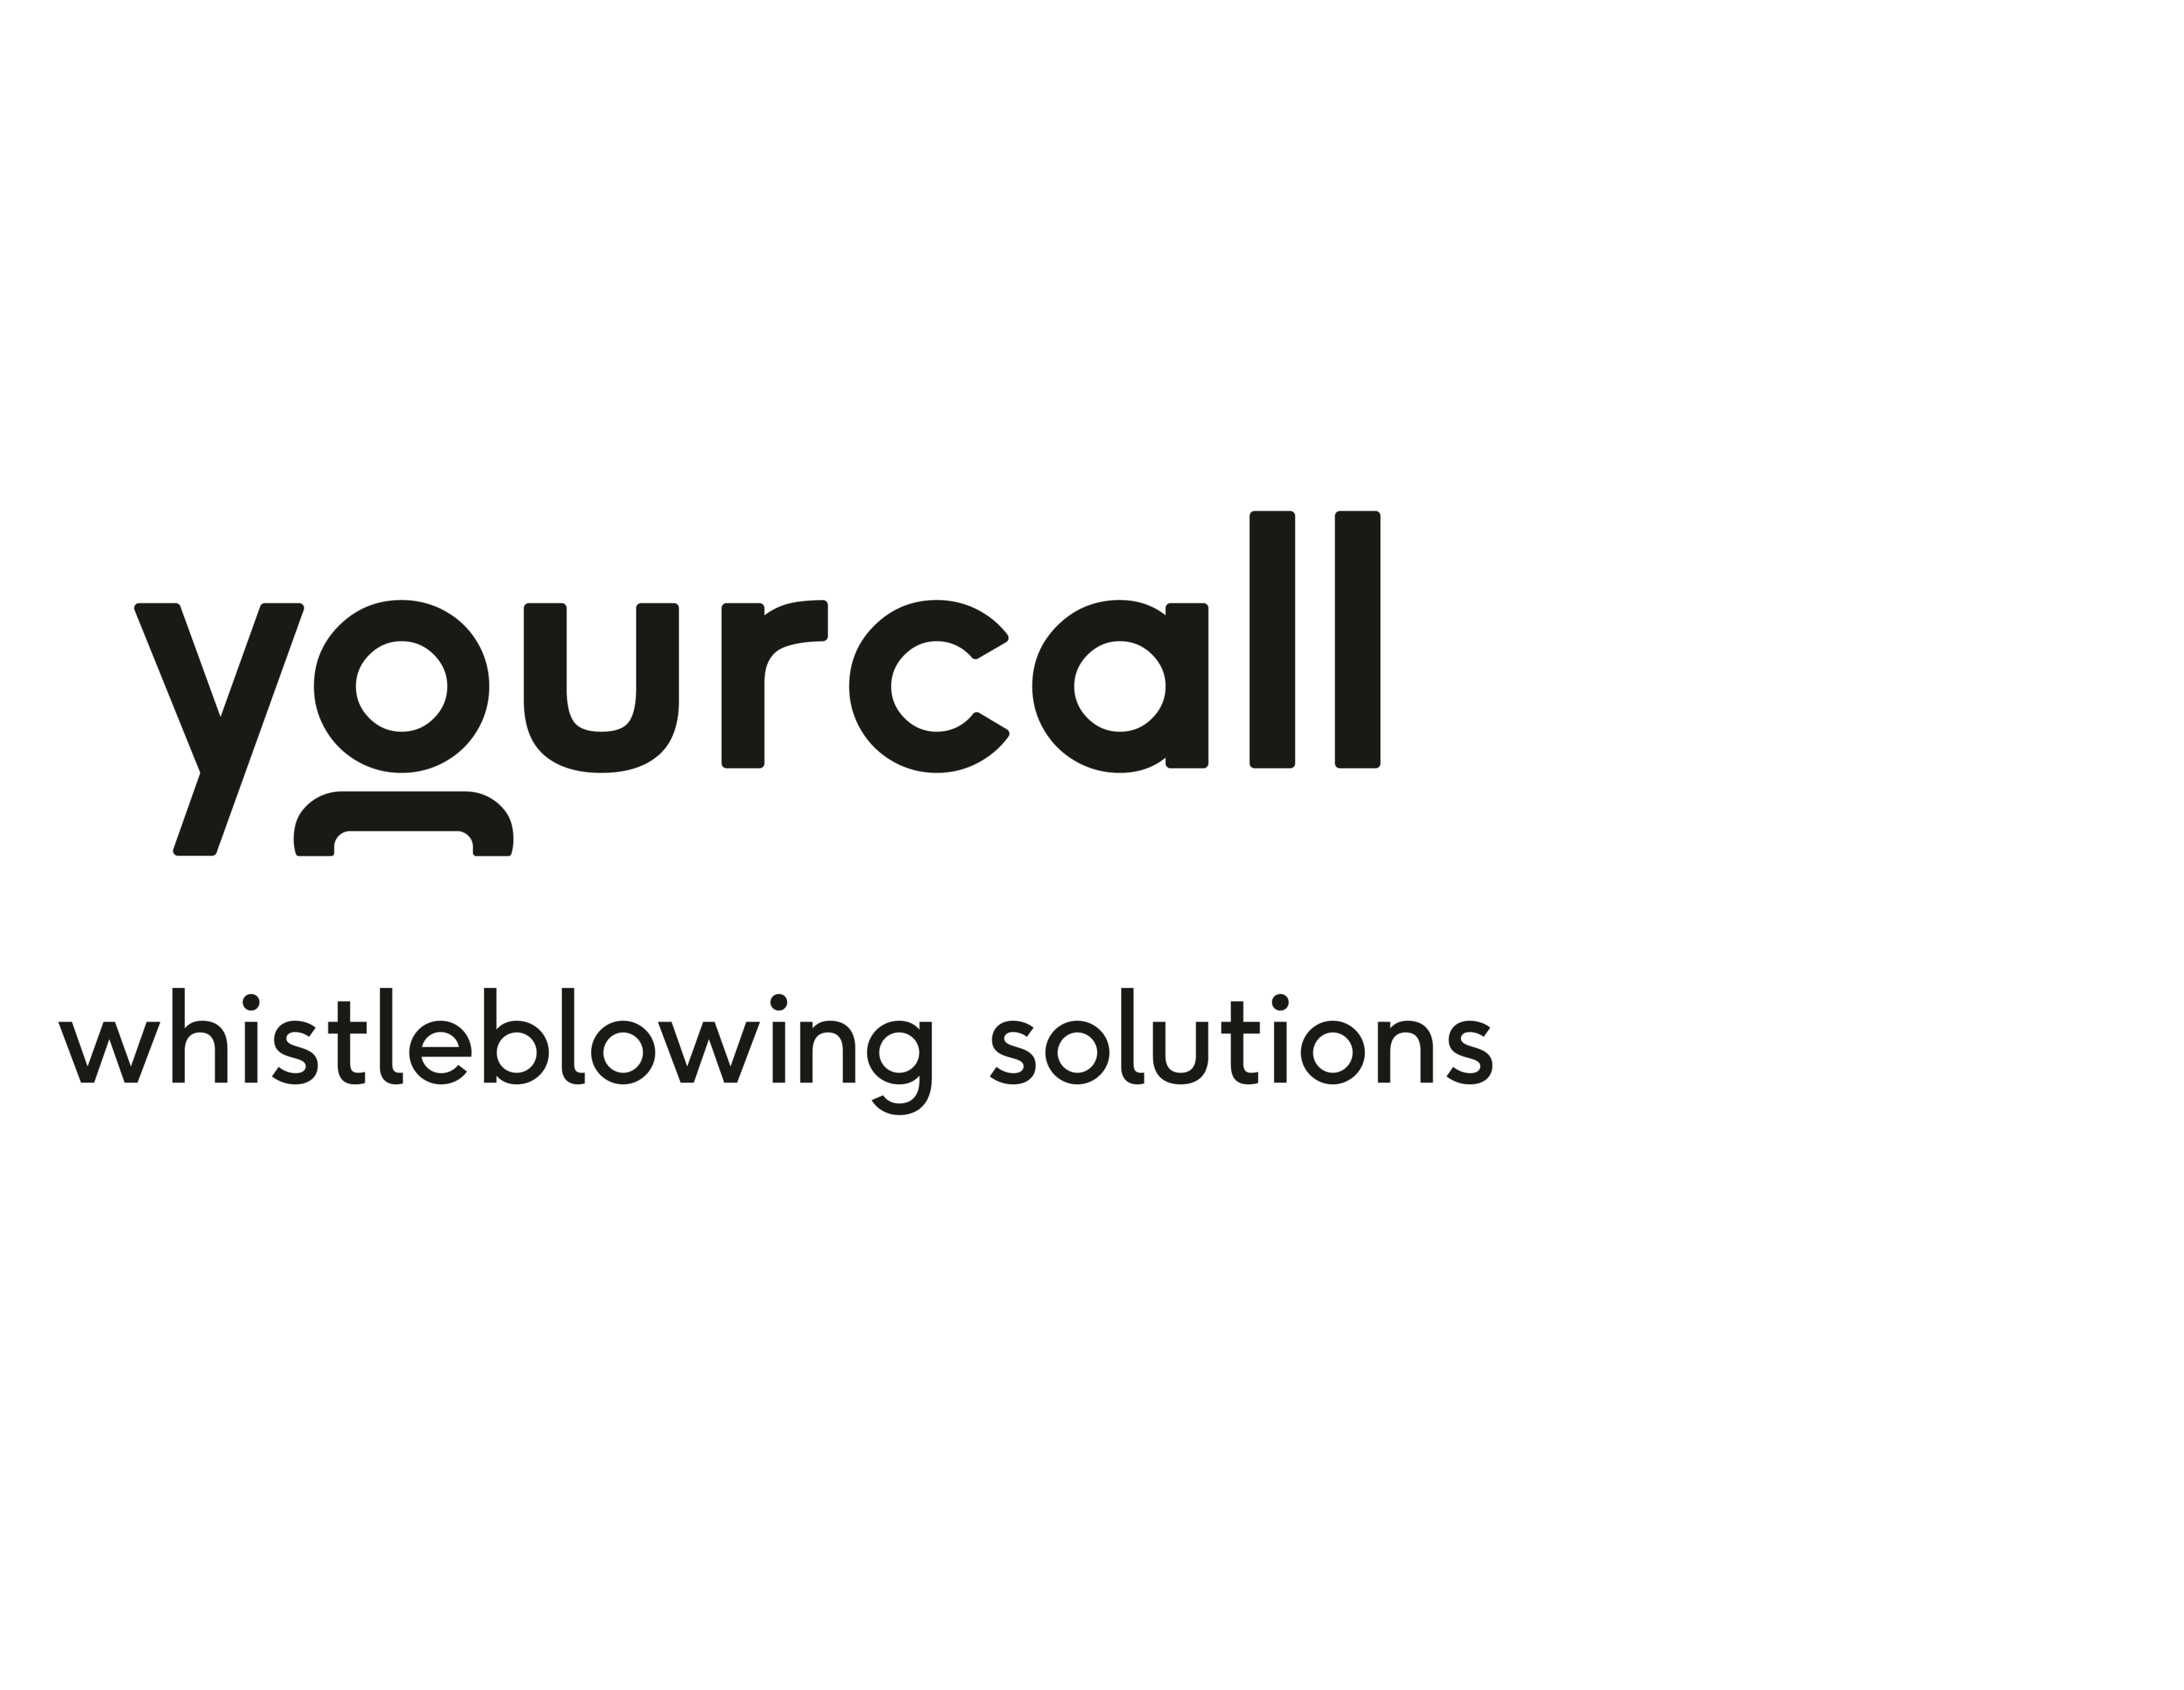 yourcall+tag_lockup[m]_ front page CWS website_v2_yourcall_[m] rounded